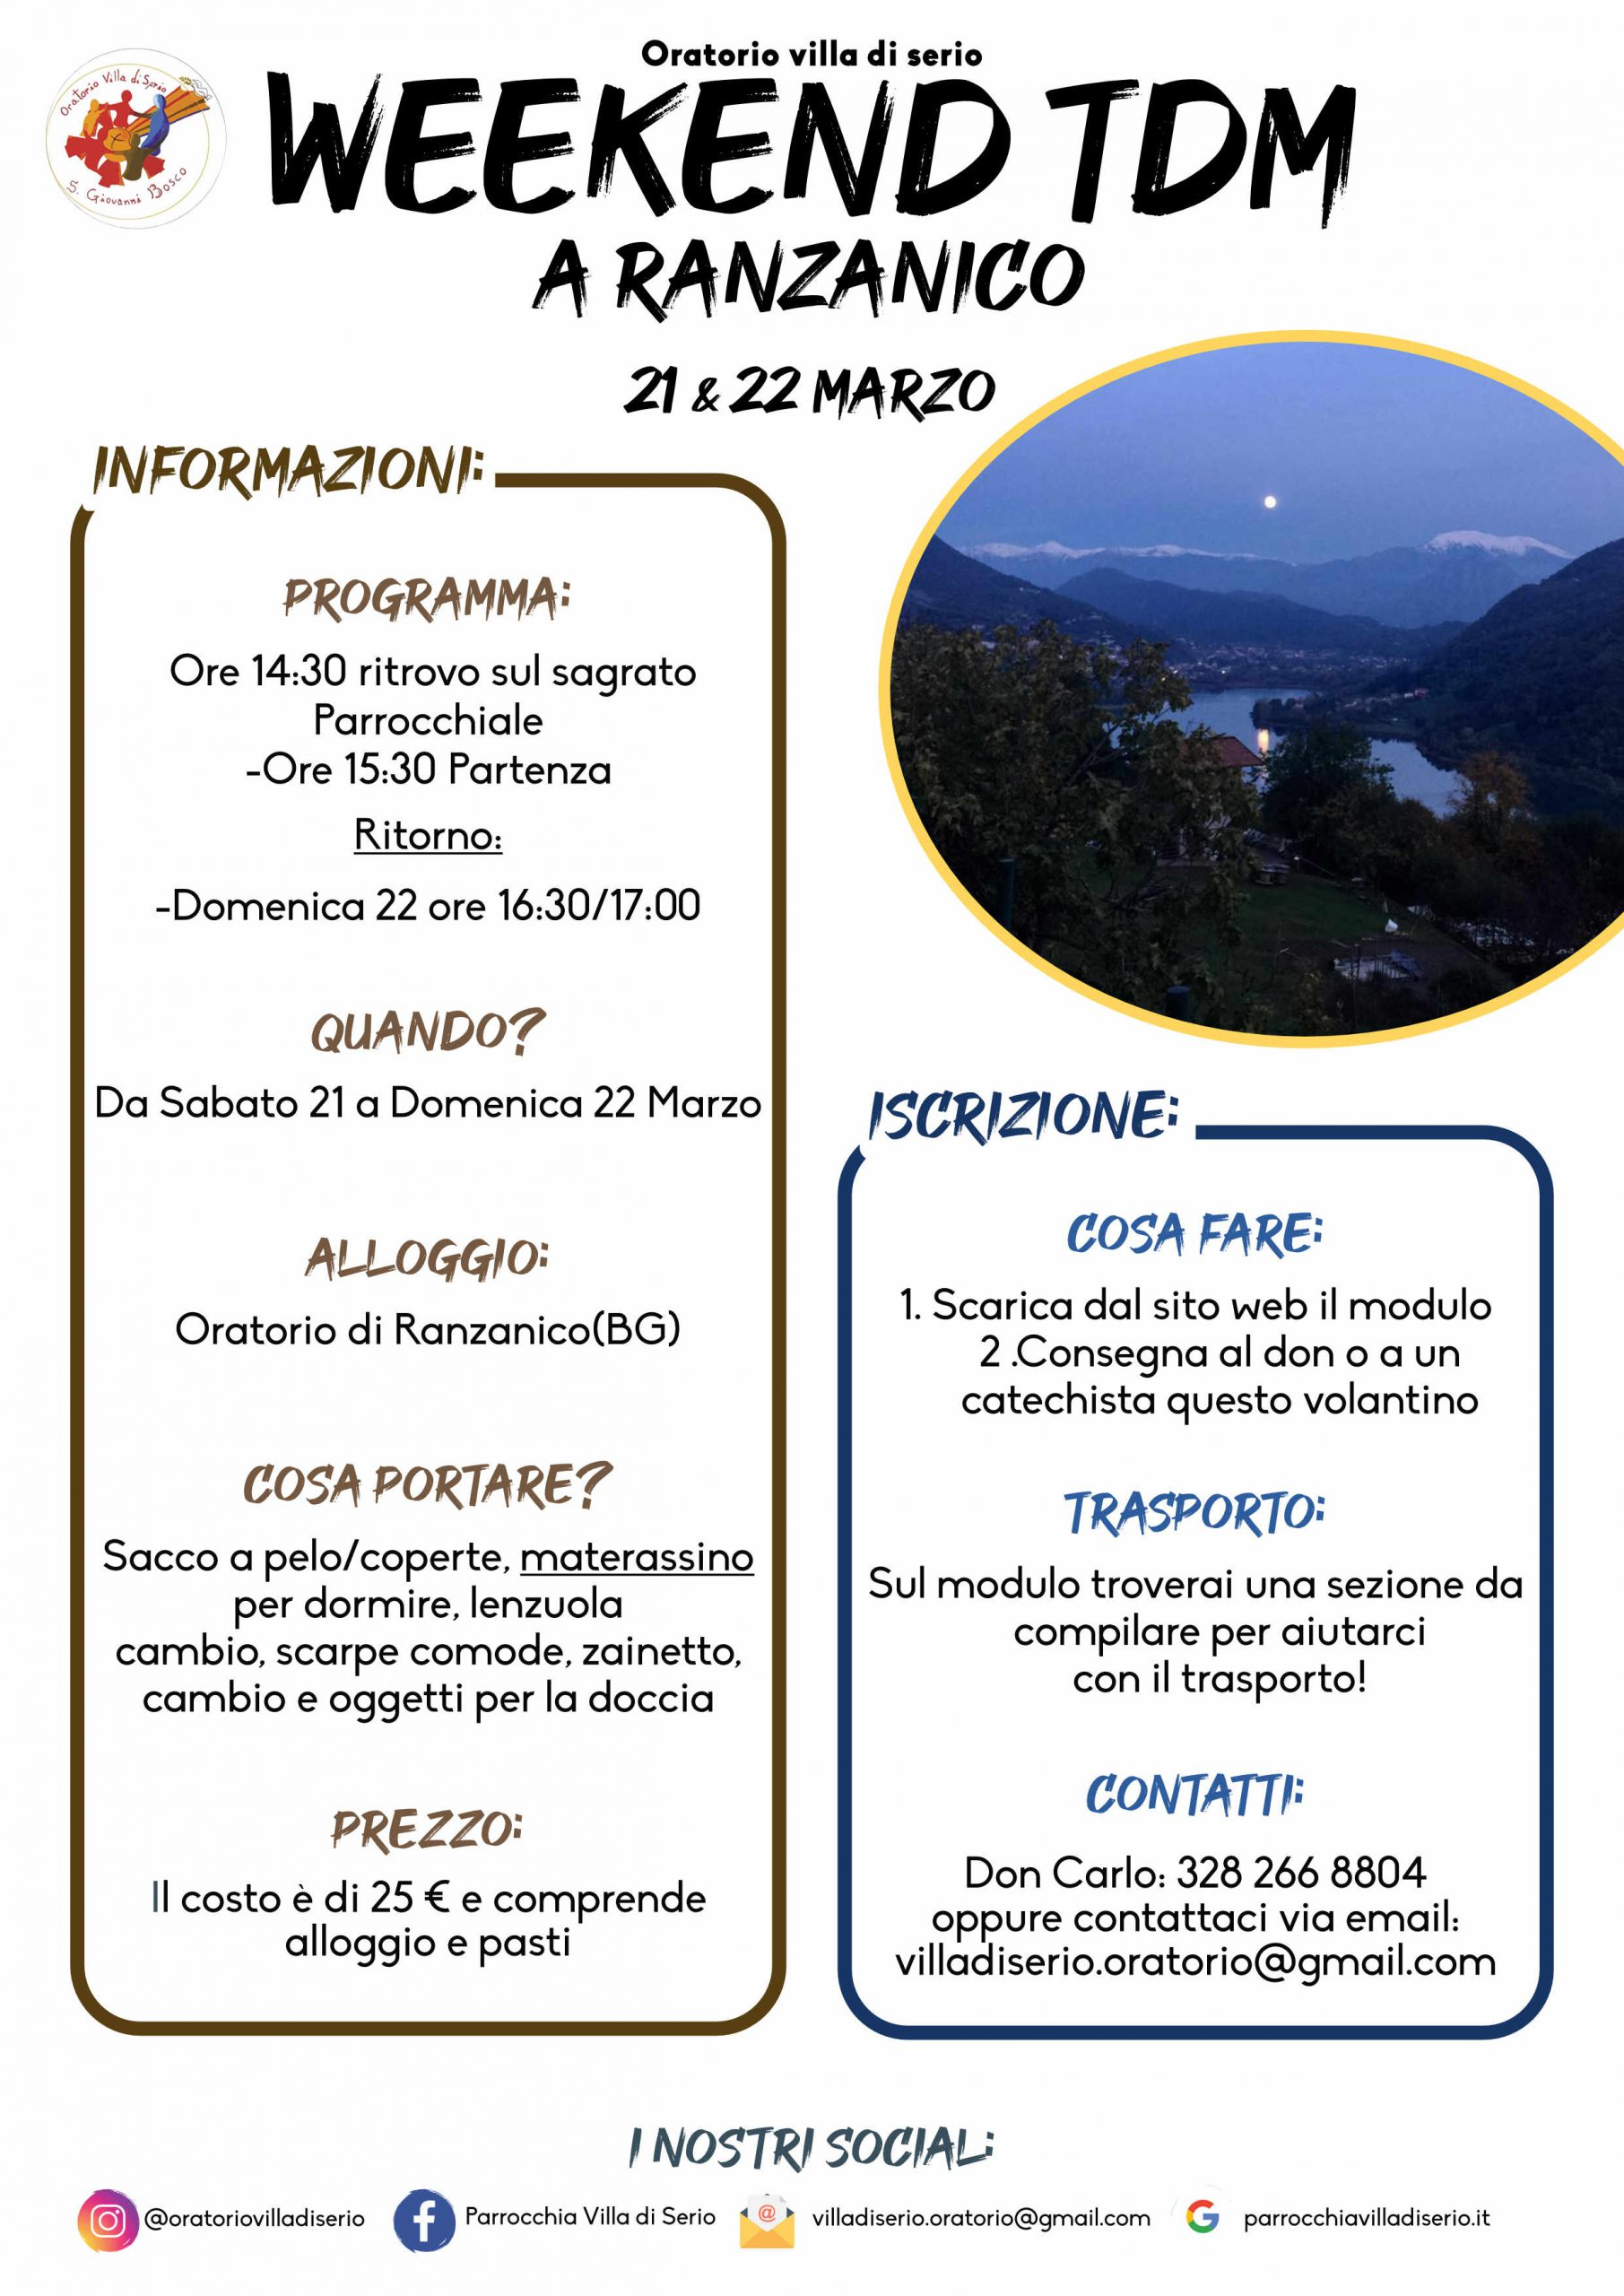 Weekend TDM – Ranzanico 2020